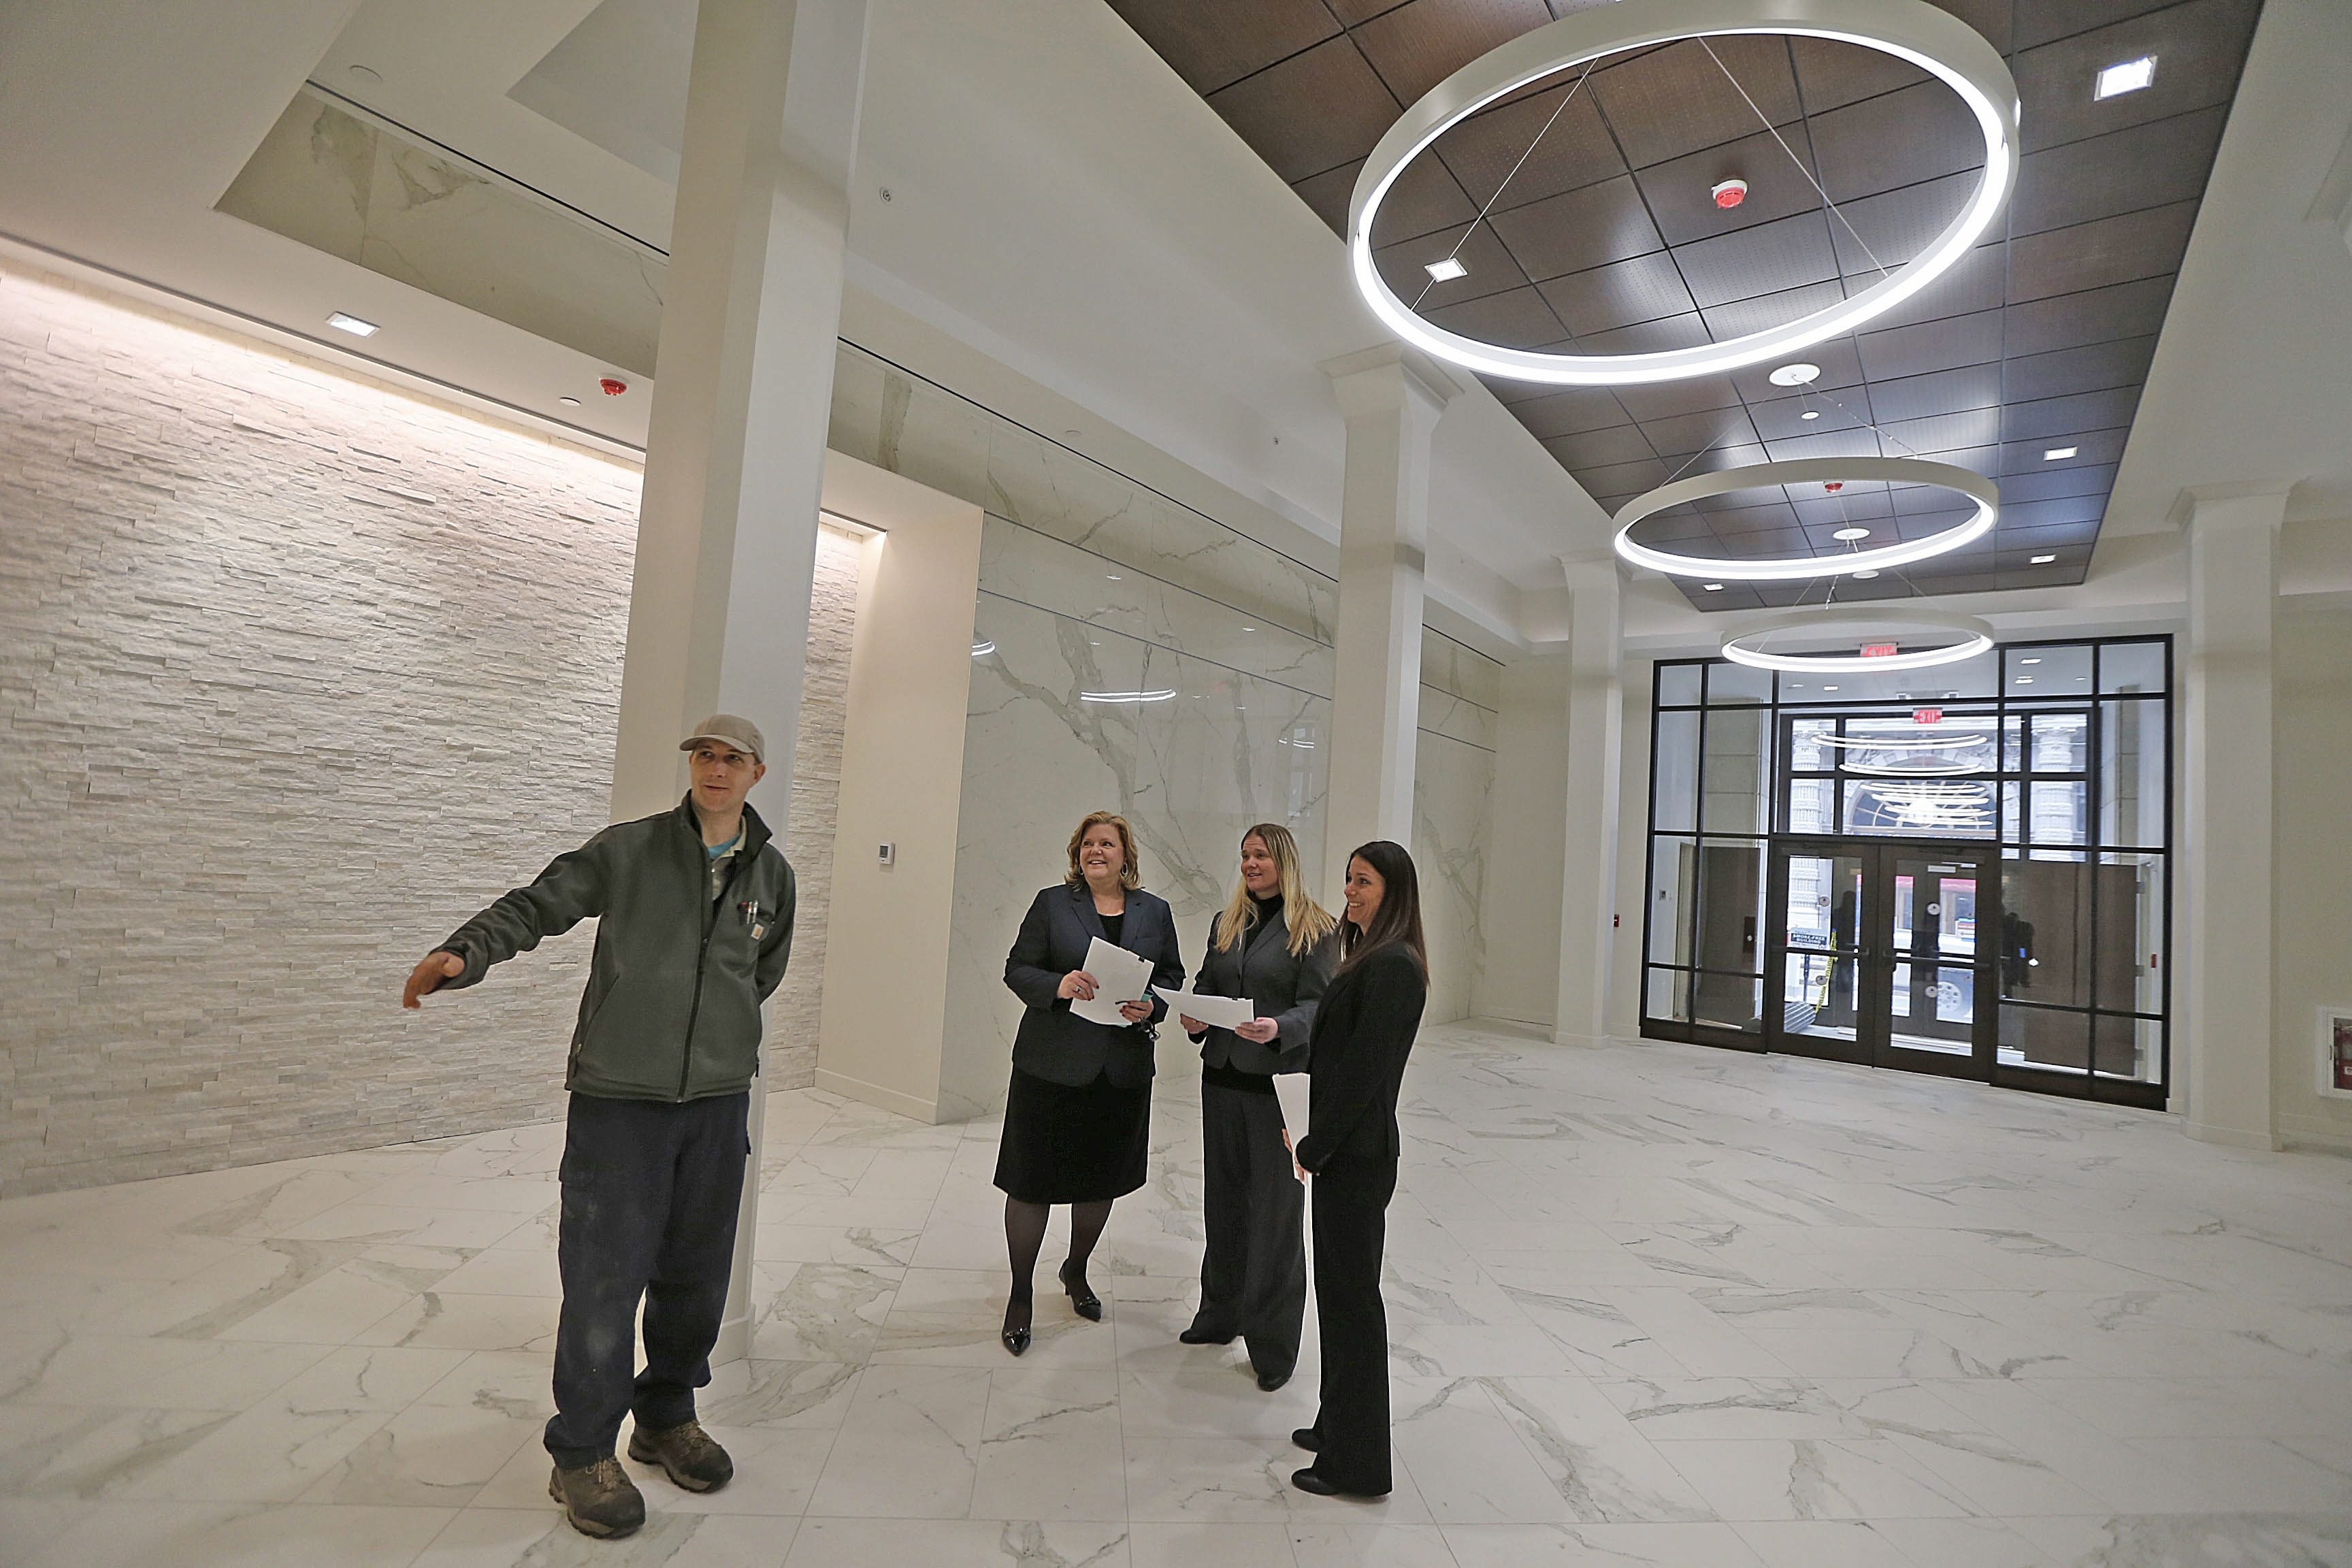 Among those overseeing Kissling Interests' renovations at 298 Main in downtown Buffalo are, from left, Amos Sweet, building superintendent; Rose Seege, vice president of operations and finance; and property managers Tamar Arroyo and Heather Klienfelder.